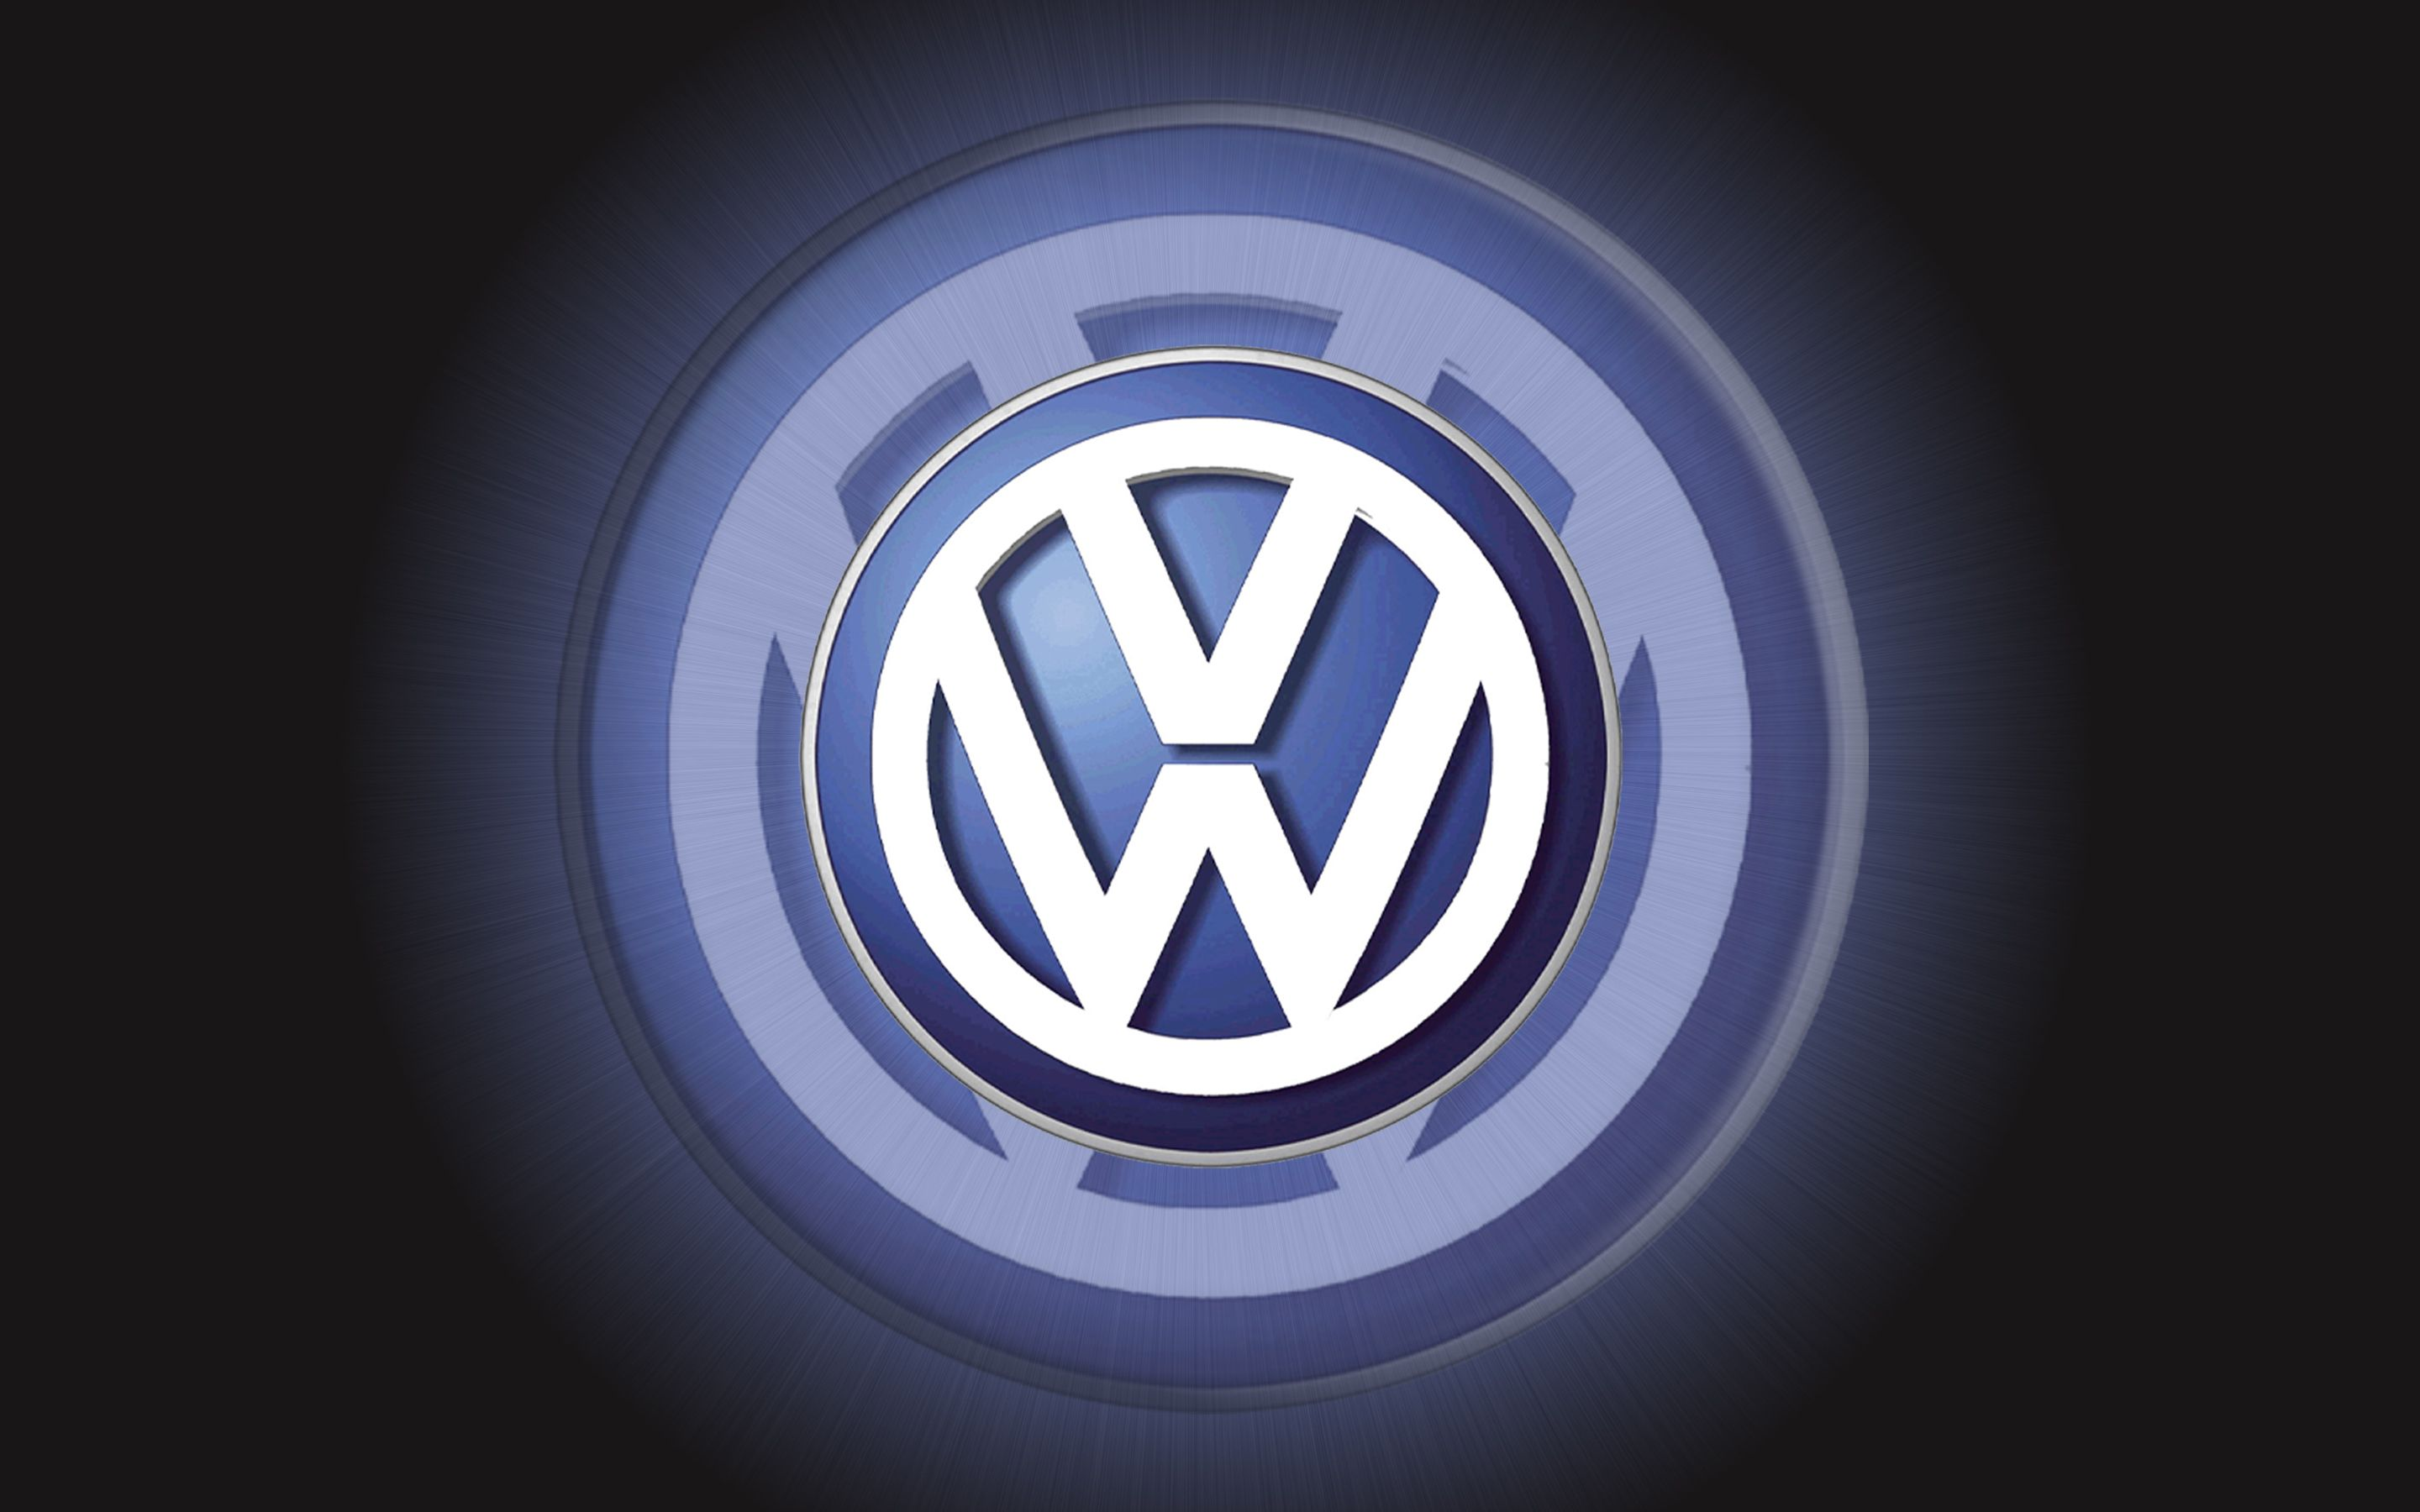 Vw logo | Volkswagen Logo Wallpaper 3D